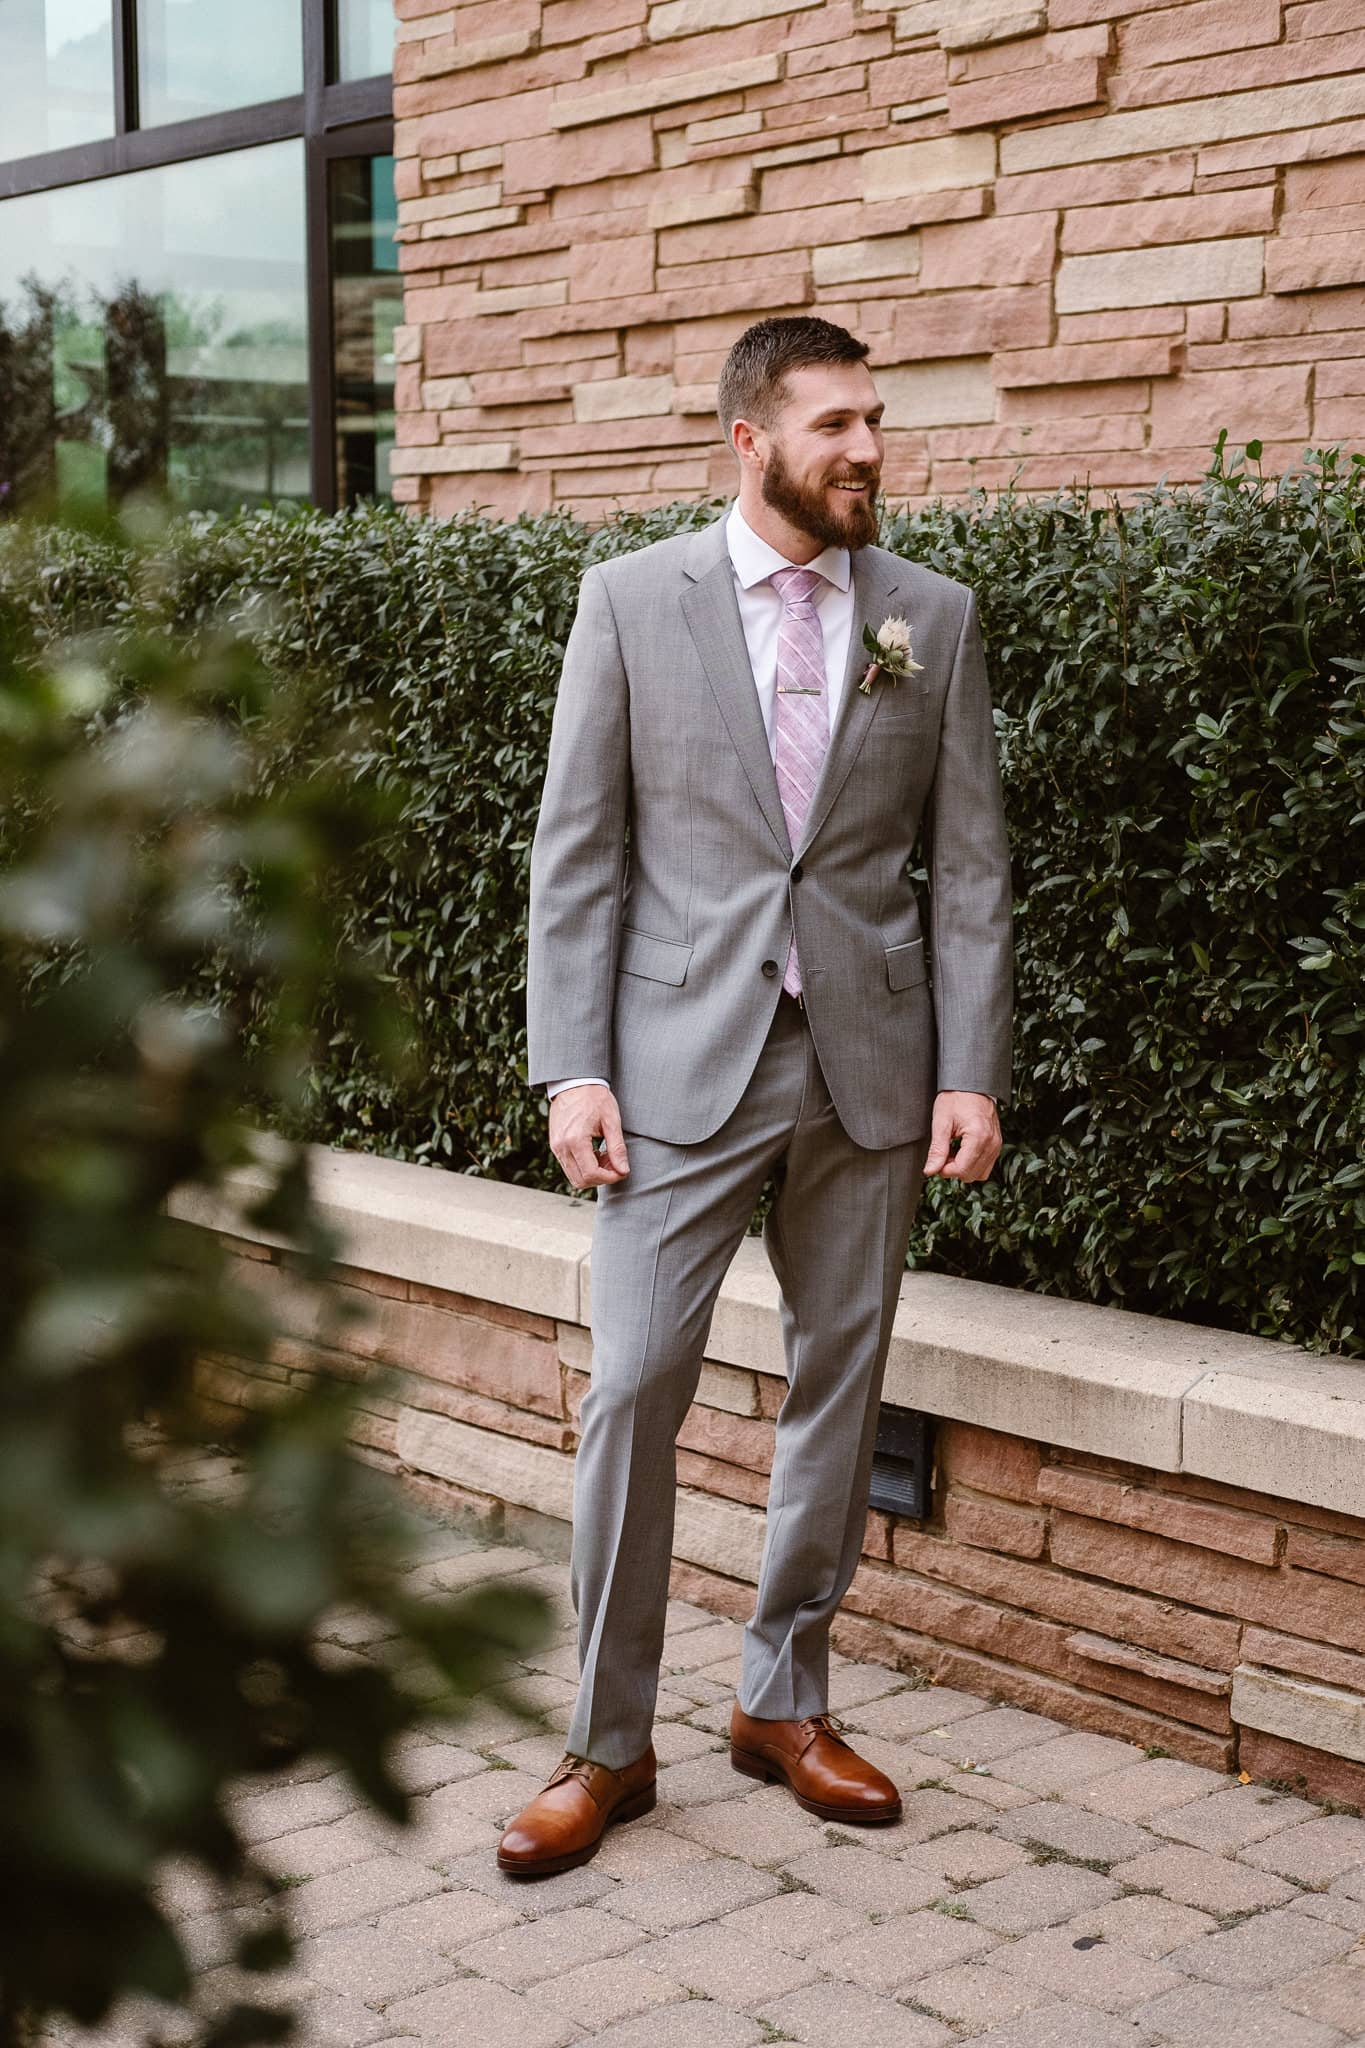 Groom getting ready for Colorado mountain elopement at St. Julien Hotel, Boulder wedding photographer, groom portrait, groom wearing gray suit and pale purple tie